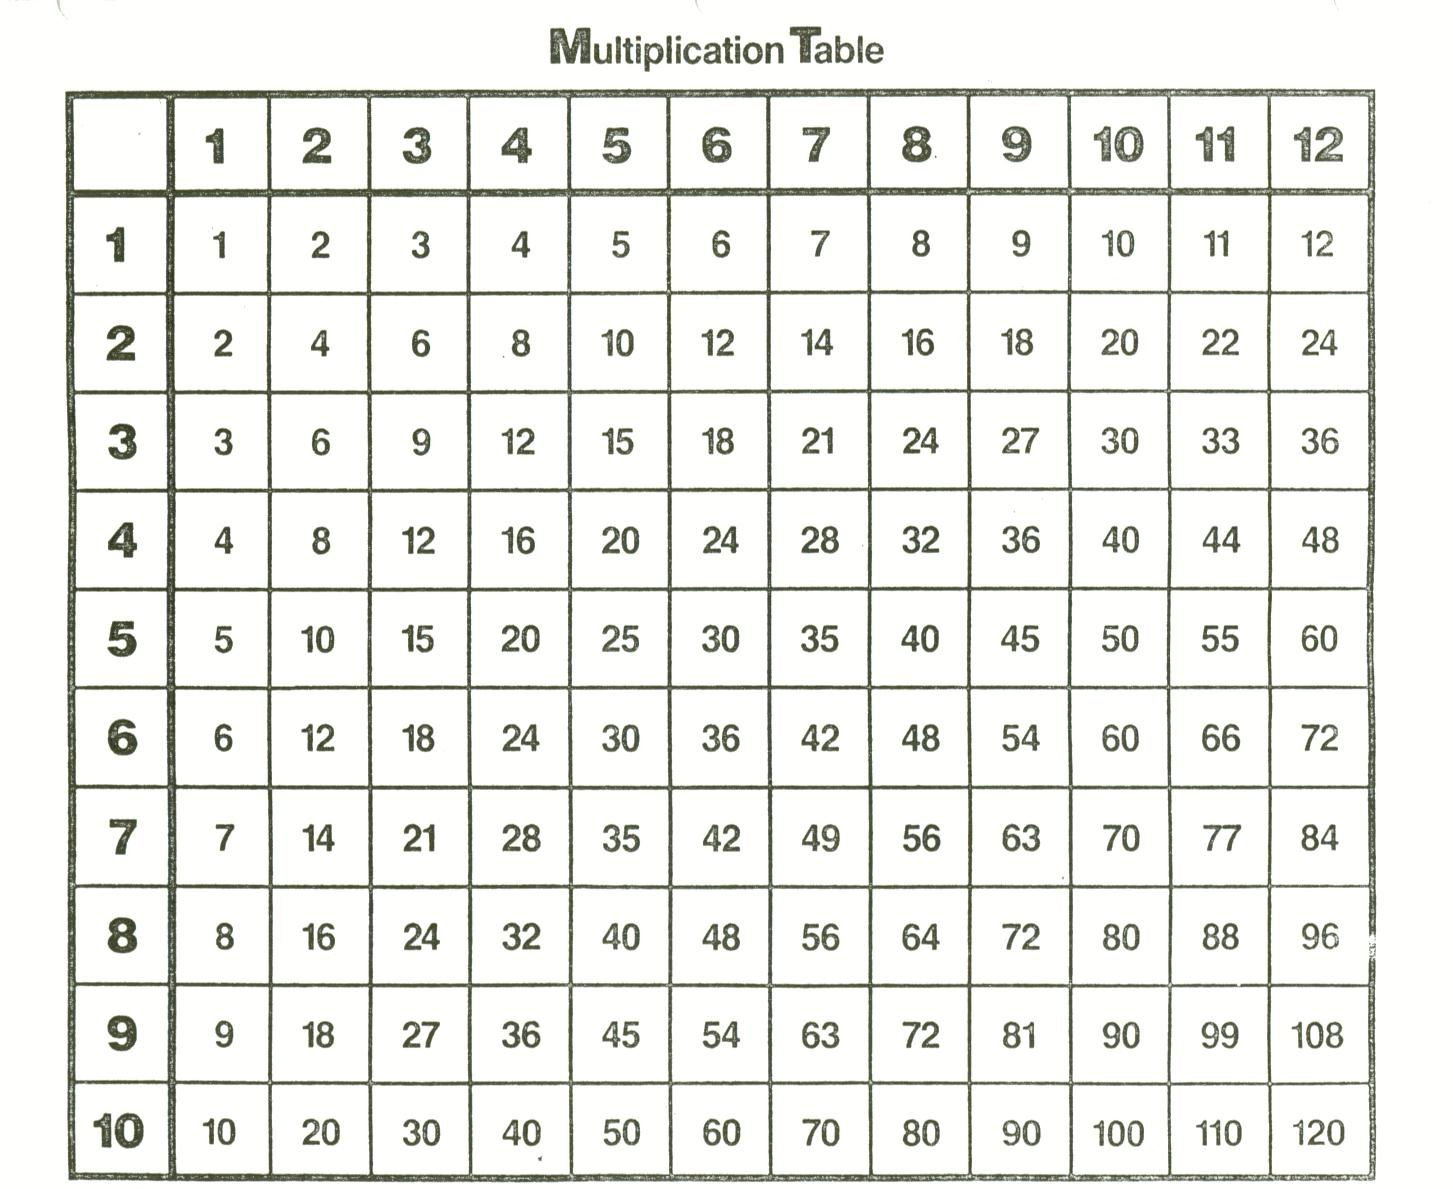 Miss kahrimanis 39 s blog more fraction action and decimal for Multiplication table of 99